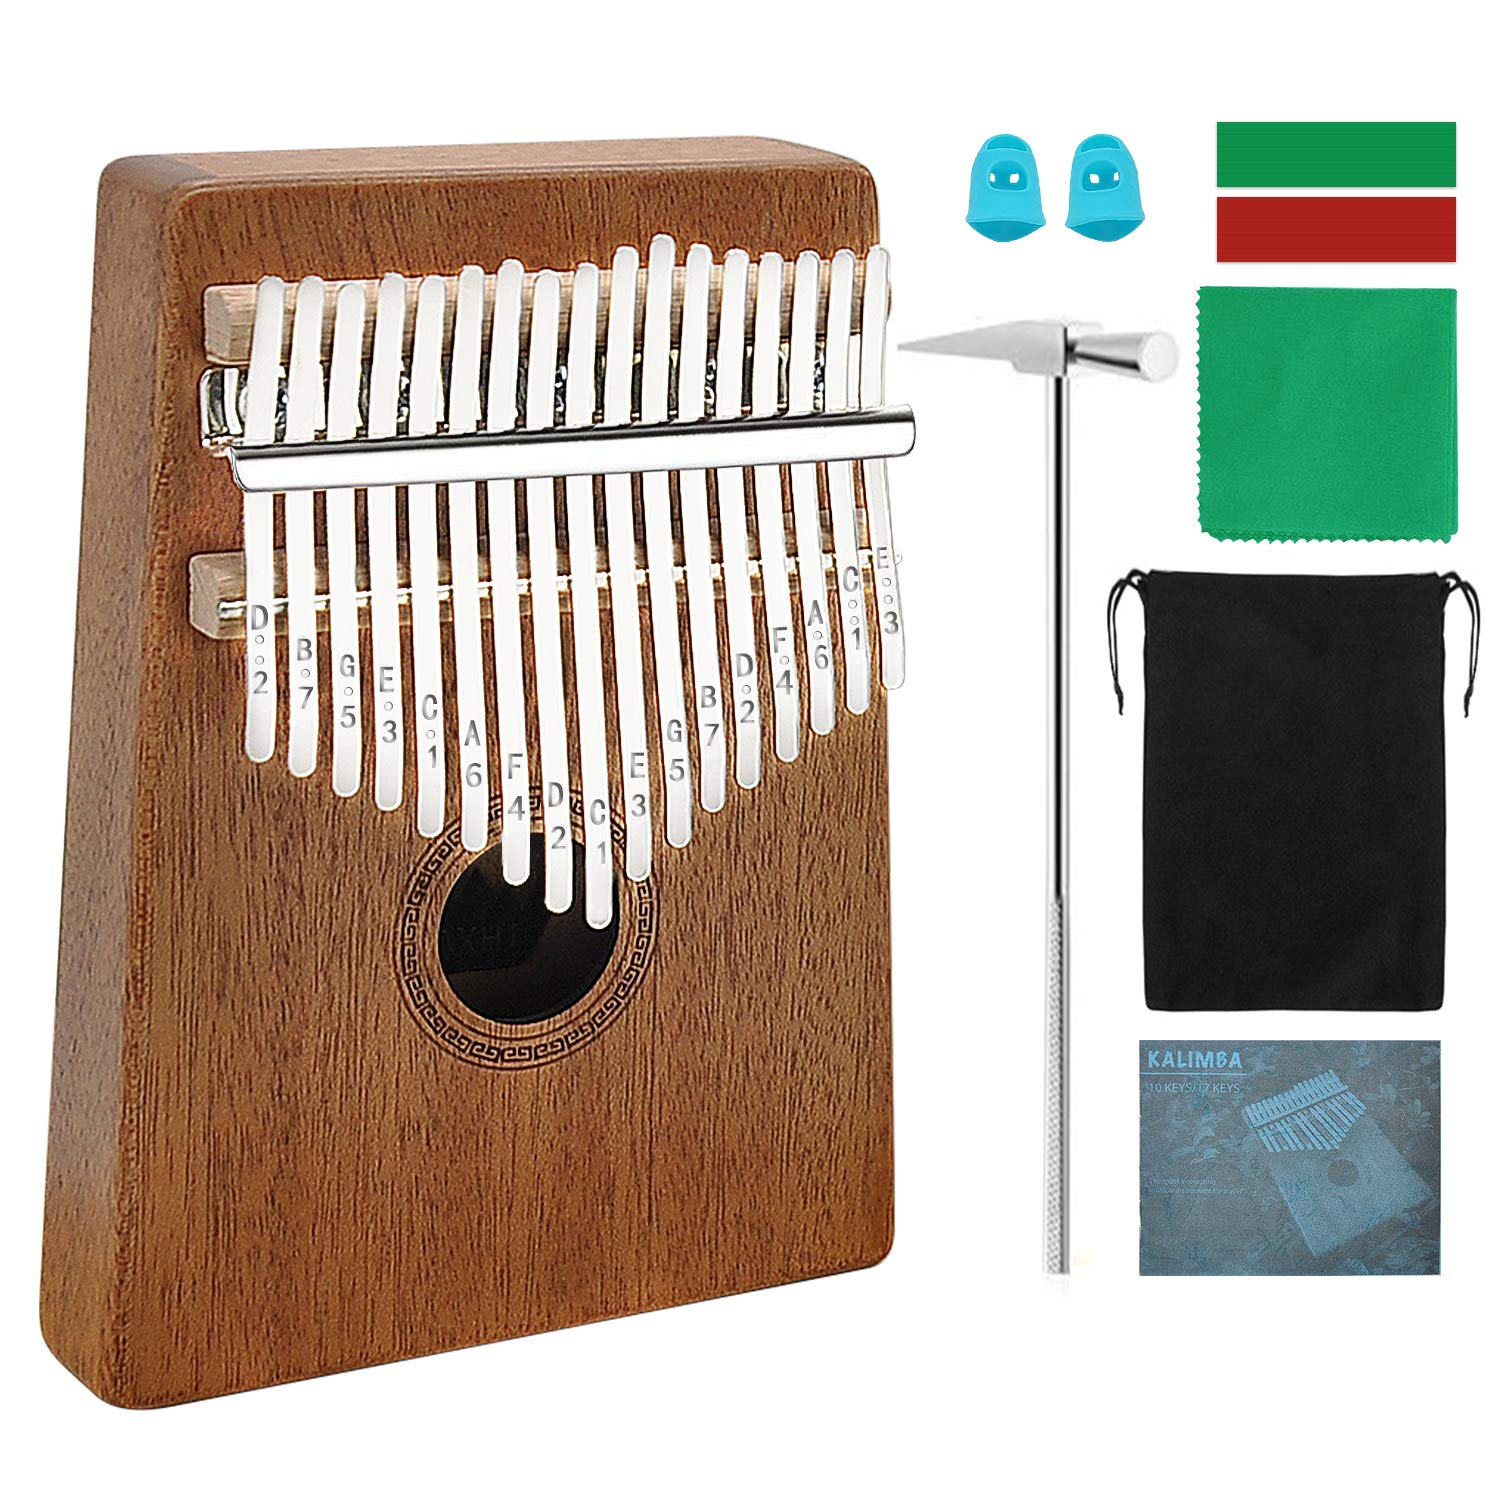 HeyMate Kalimba 17 keys with Instruction and Tune Hammer, Portable Thumb Piano Mbira Sanza Mahogany Body Ore Metal Tines 1 Piece